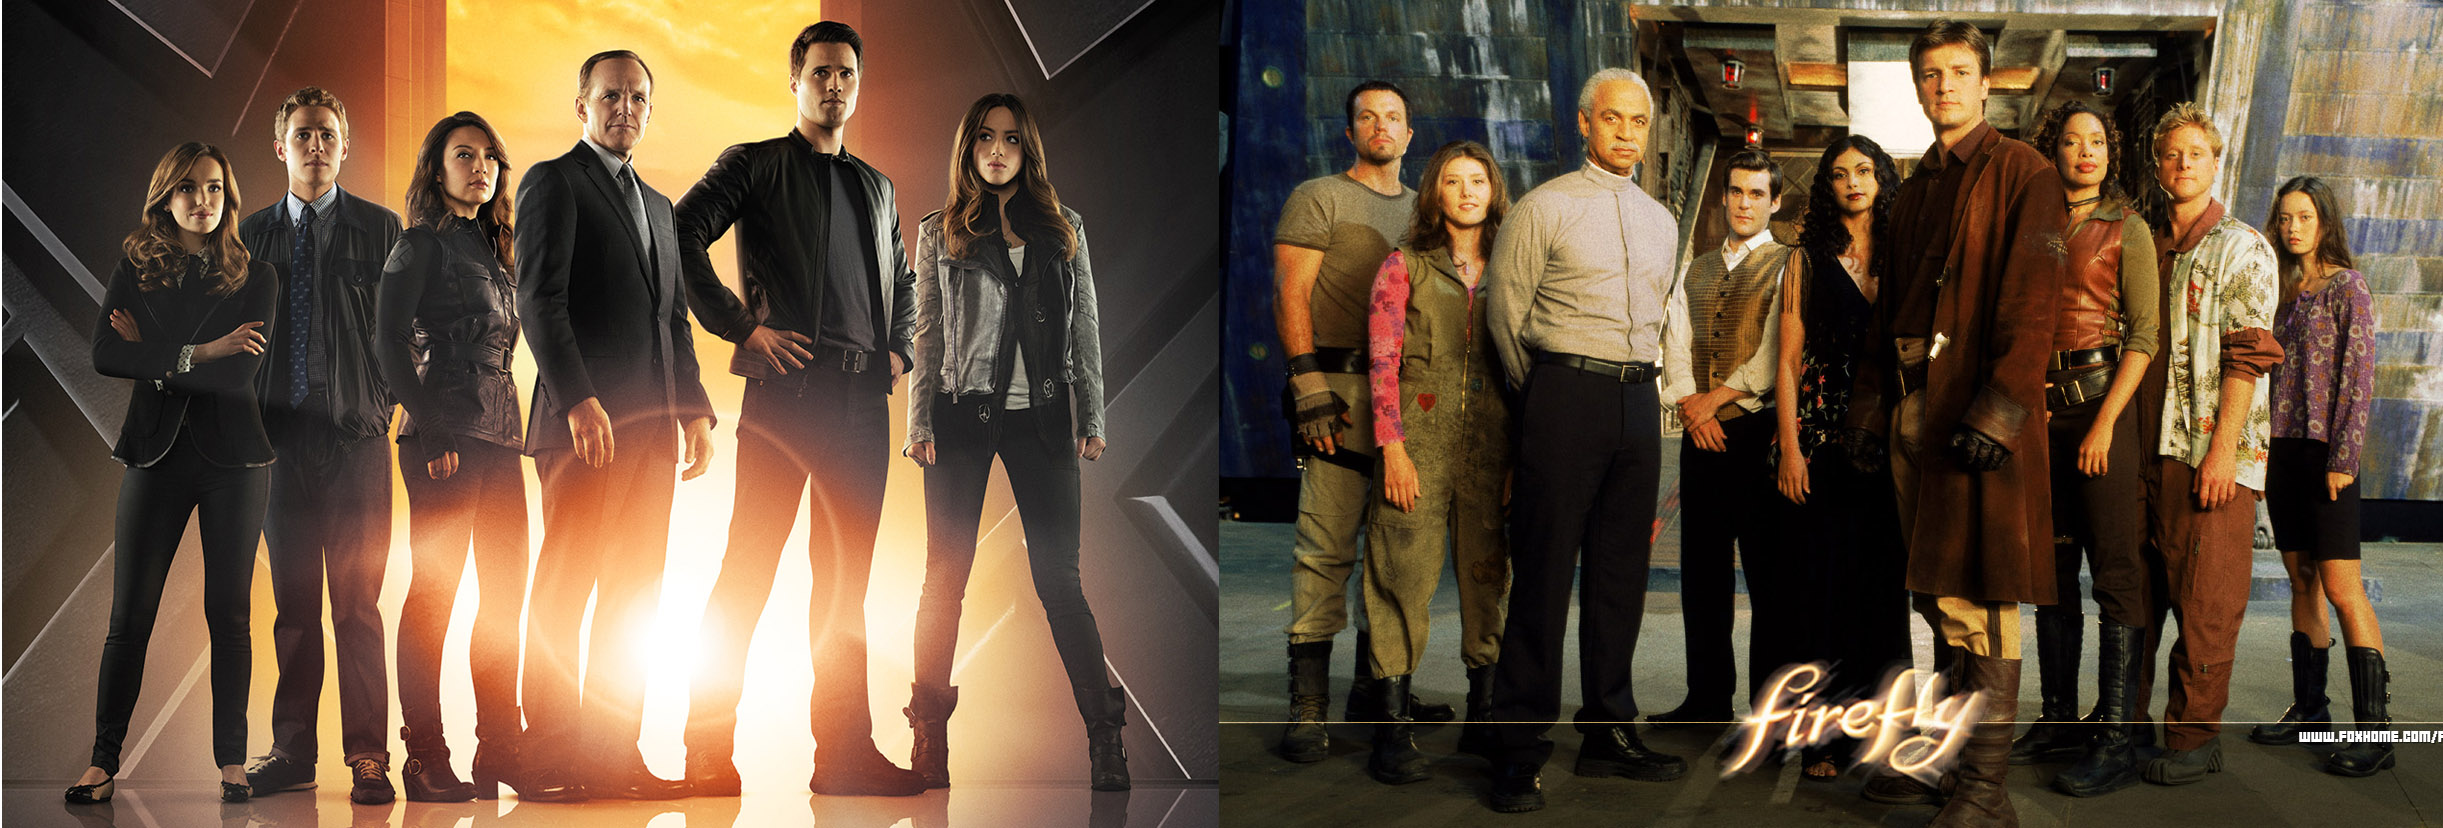 The Whedon Formula Why The Characters Of Firefly And